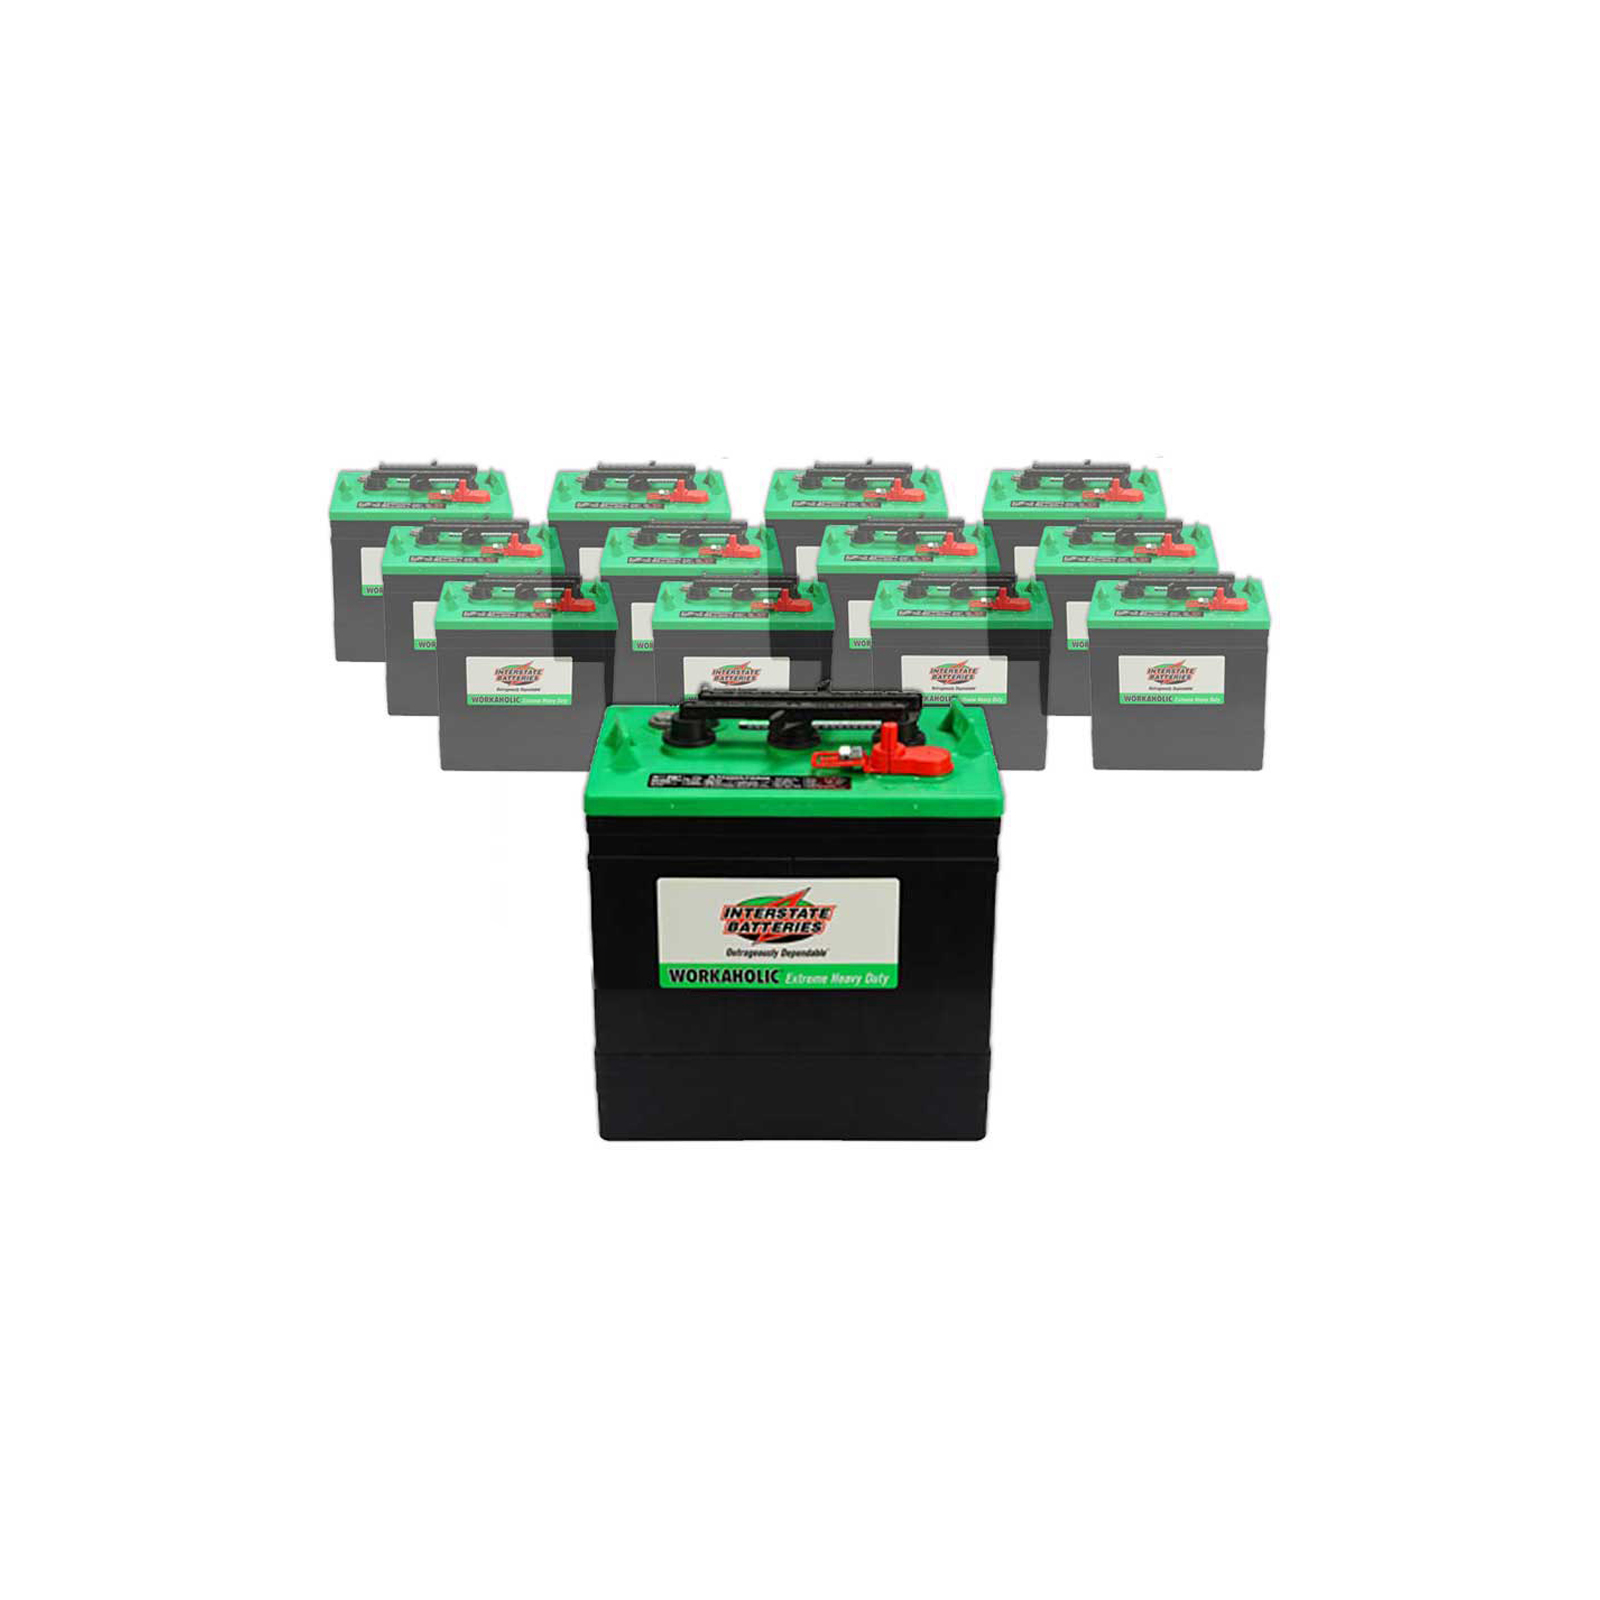 12 x 232ah 6v wet deep cycle battery interstate gc2 xhd. Black Bedroom Furniture Sets. Home Design Ideas